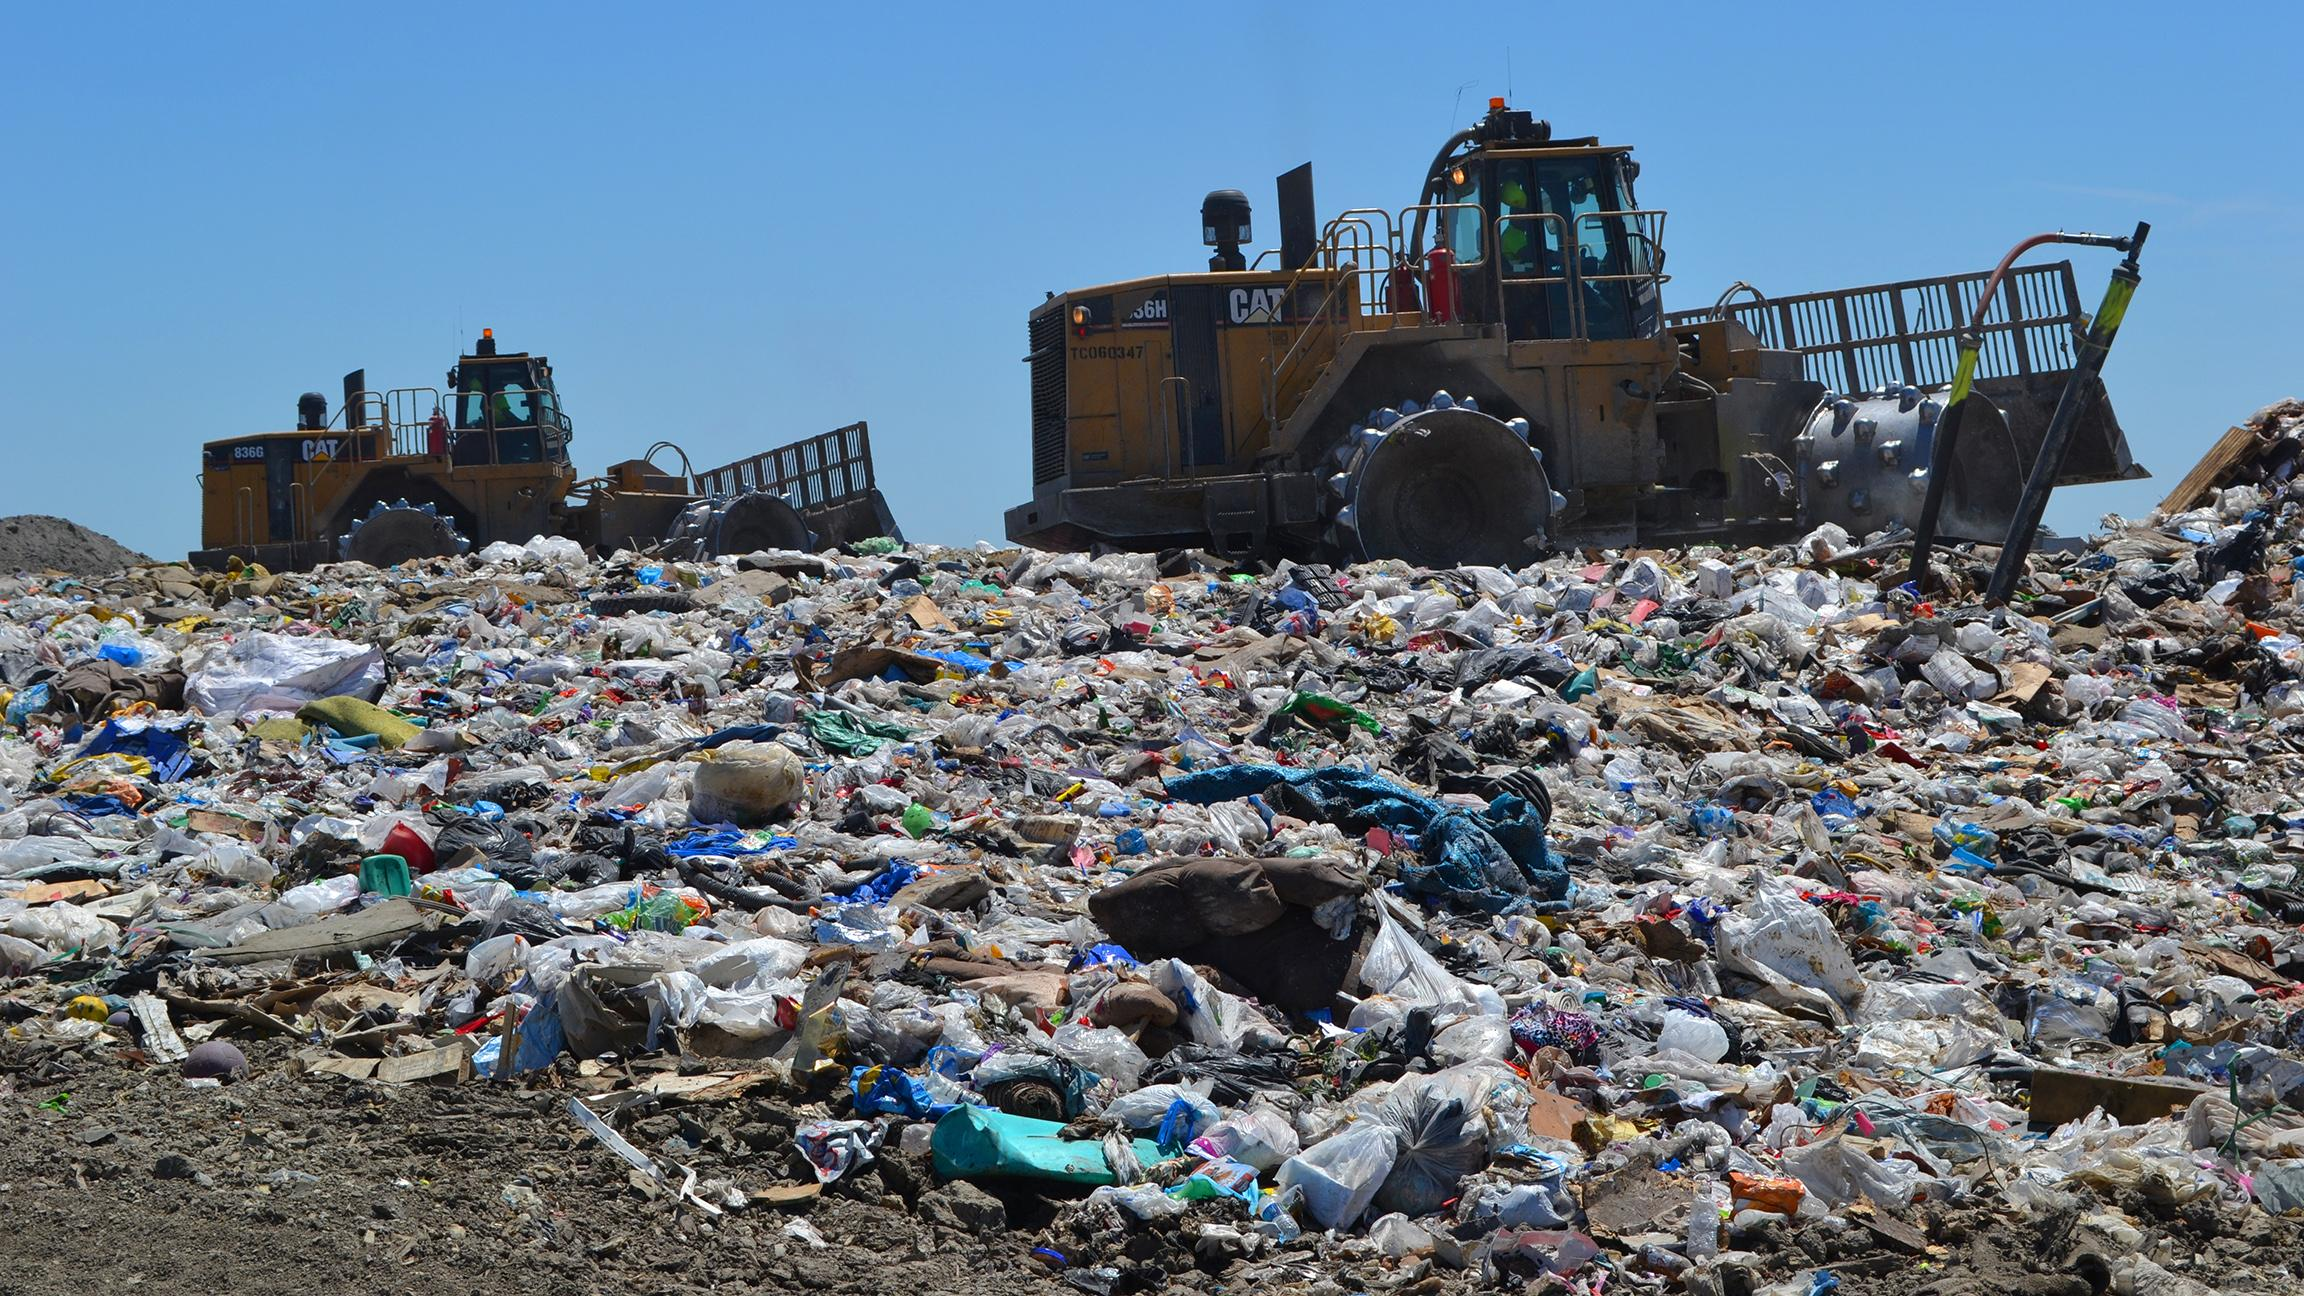 A landfill in Livingston County operated by Republic Services. (Alex Ruppenthal / Chicago Tonight)